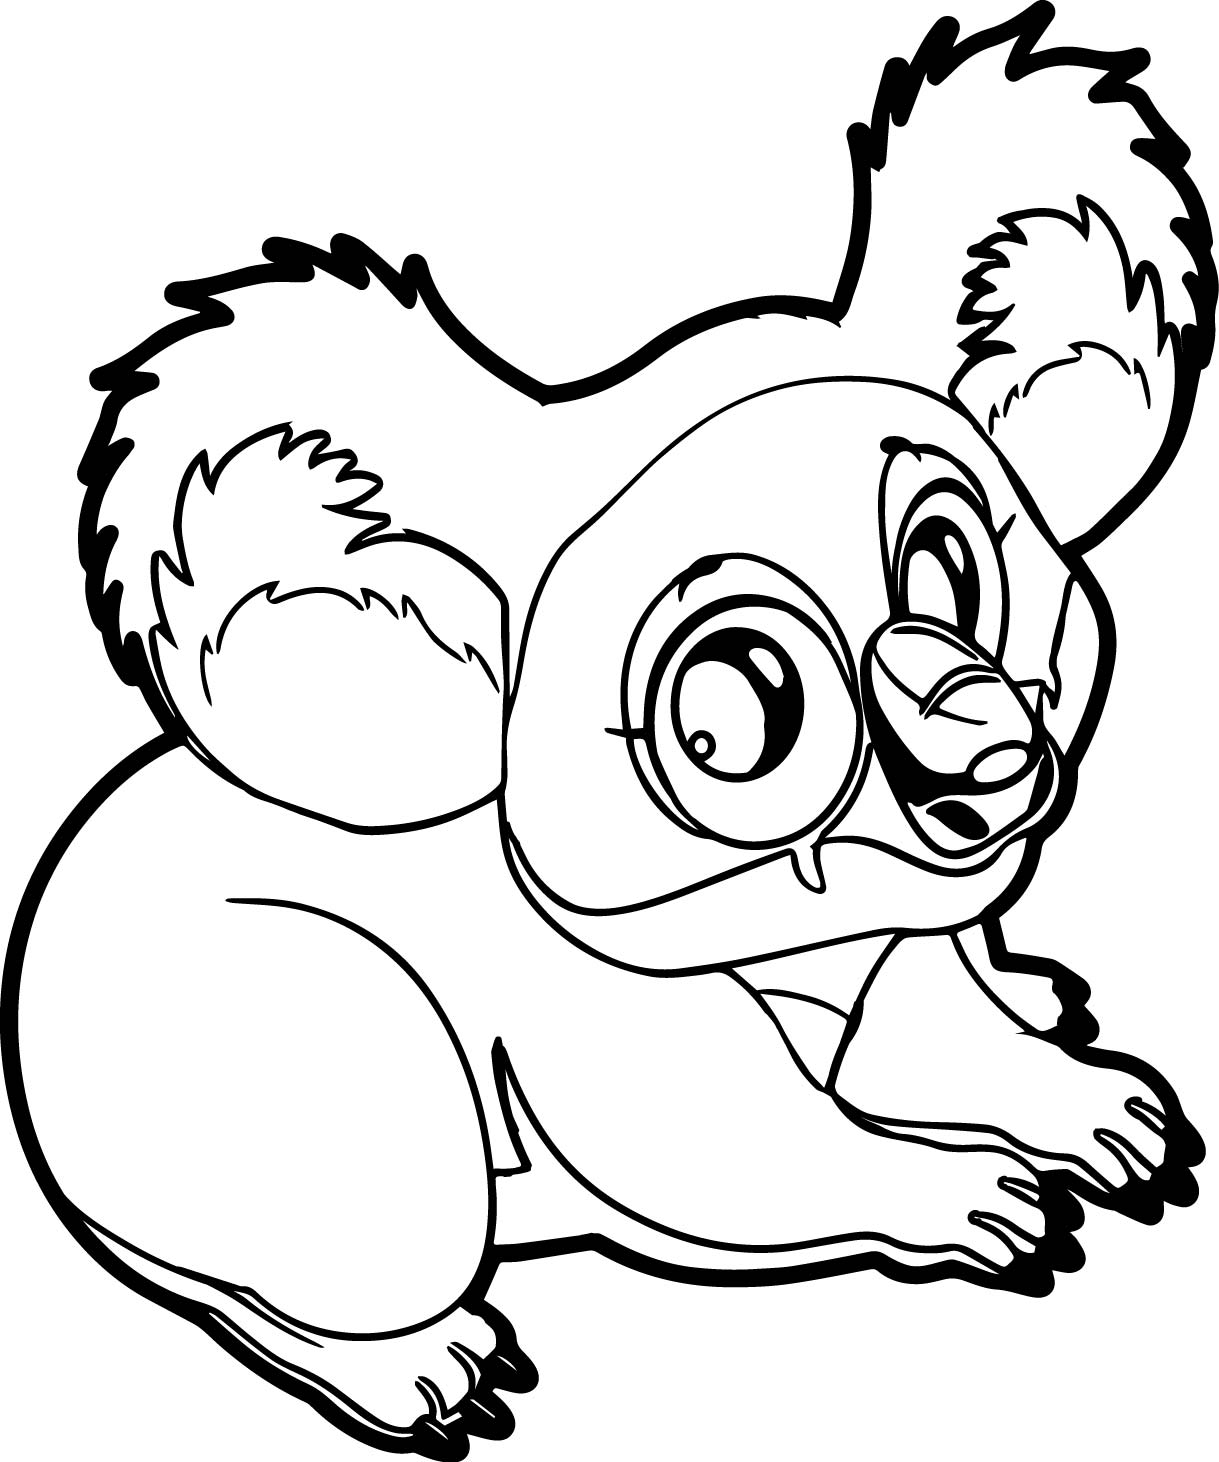 coloring page koala free coloring pages animal coloring pages koala and coloring koala page